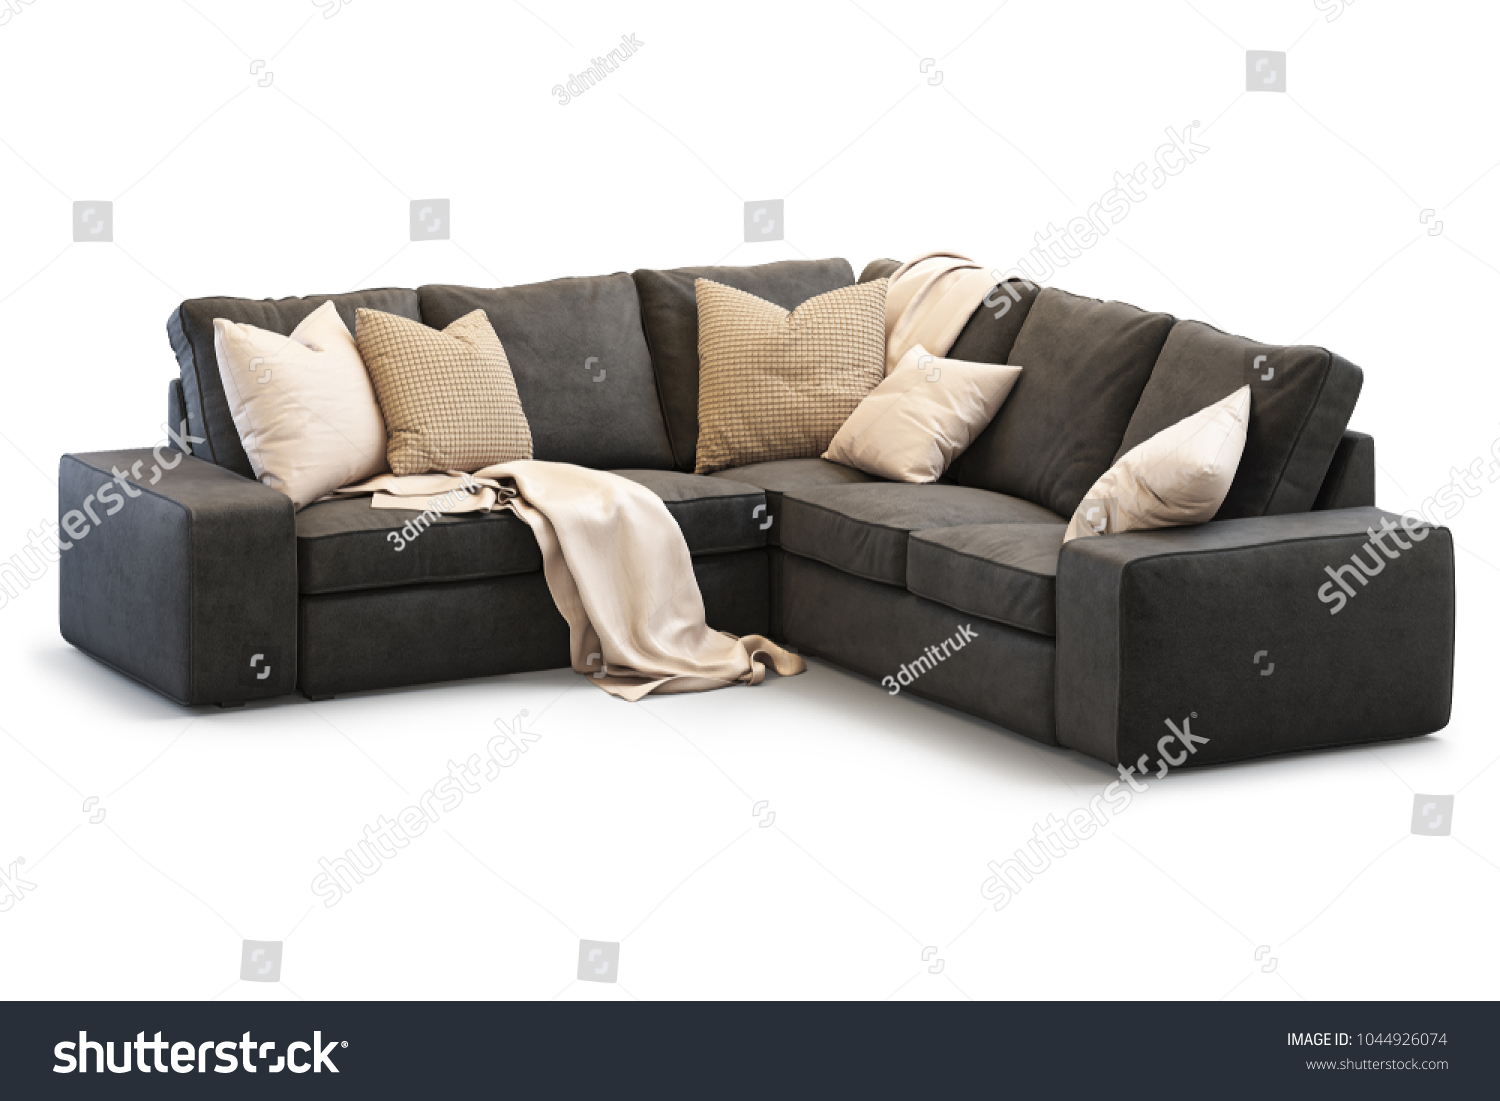 Ikea Kivik Sofa Royalty Free Stock Illustration Of Modern Textile Ikea Kivik Sofa